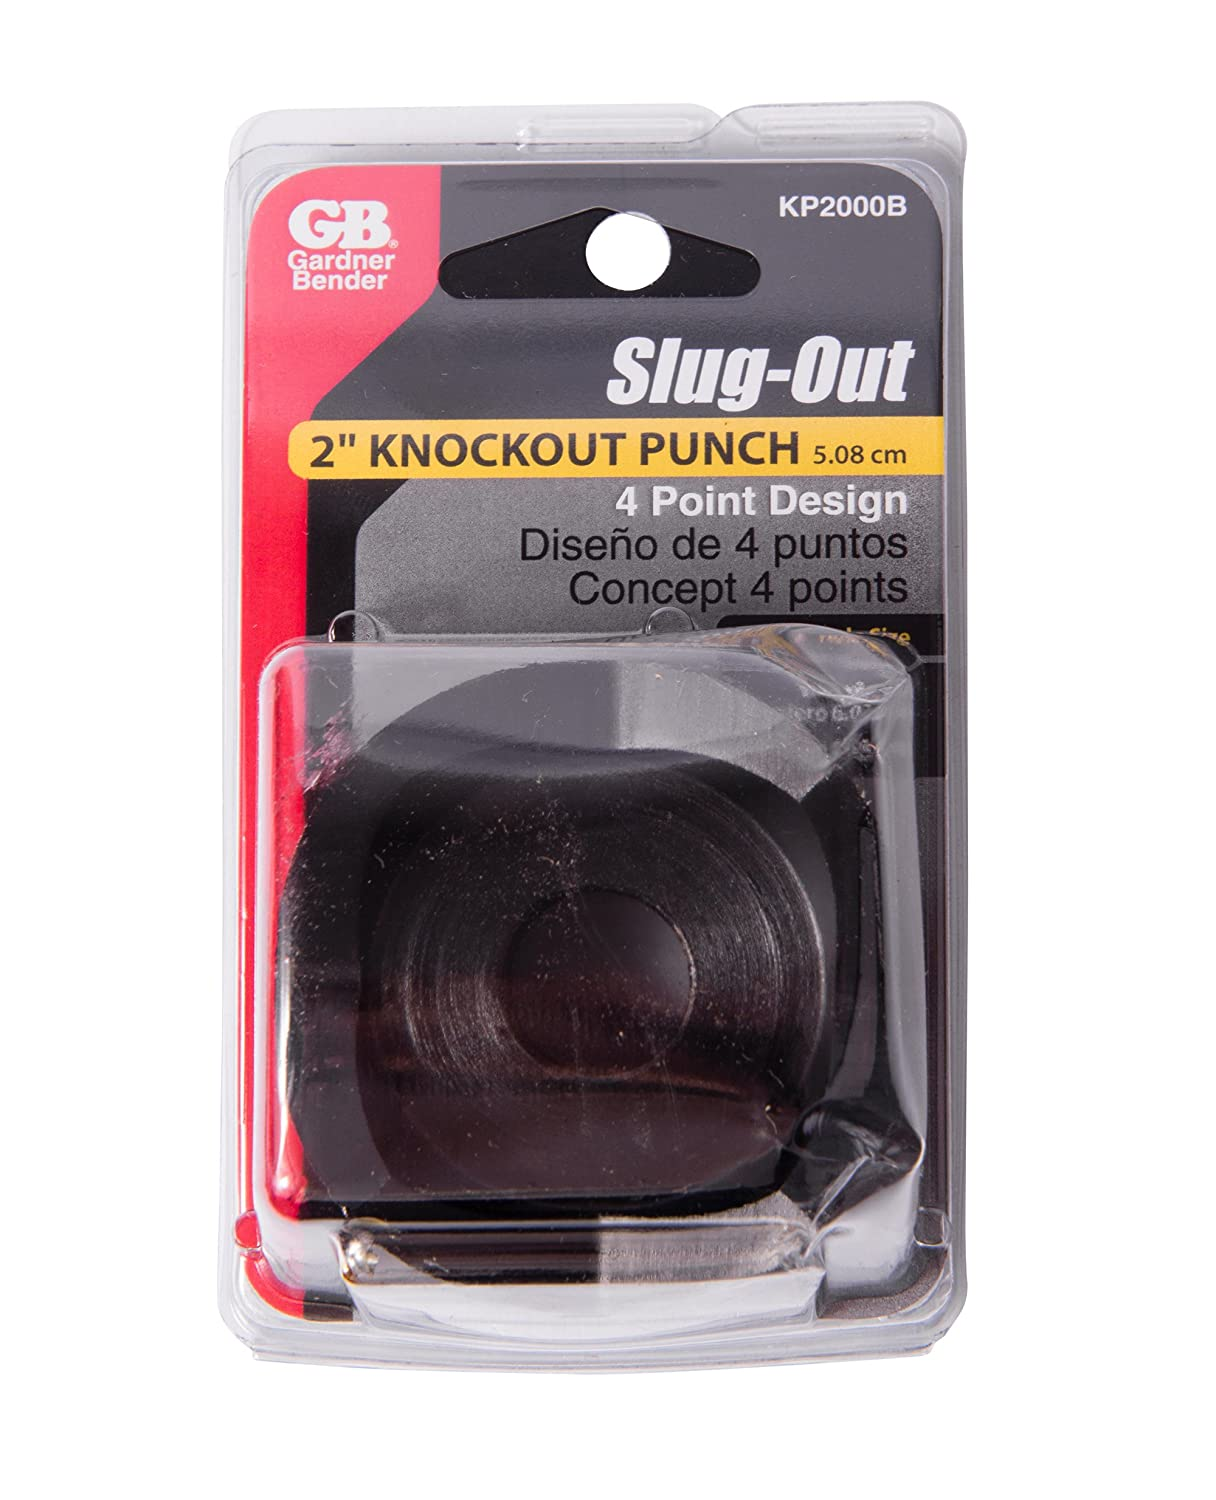 1/¼ Inch Conduit Pipe Size Cutting Diameter Knockout Gardner Bender KD1250B Slug-Out Individual Contractor Die Knockout Punches 10 AWG Mild Steel /& 12 AWG Stainless Steel